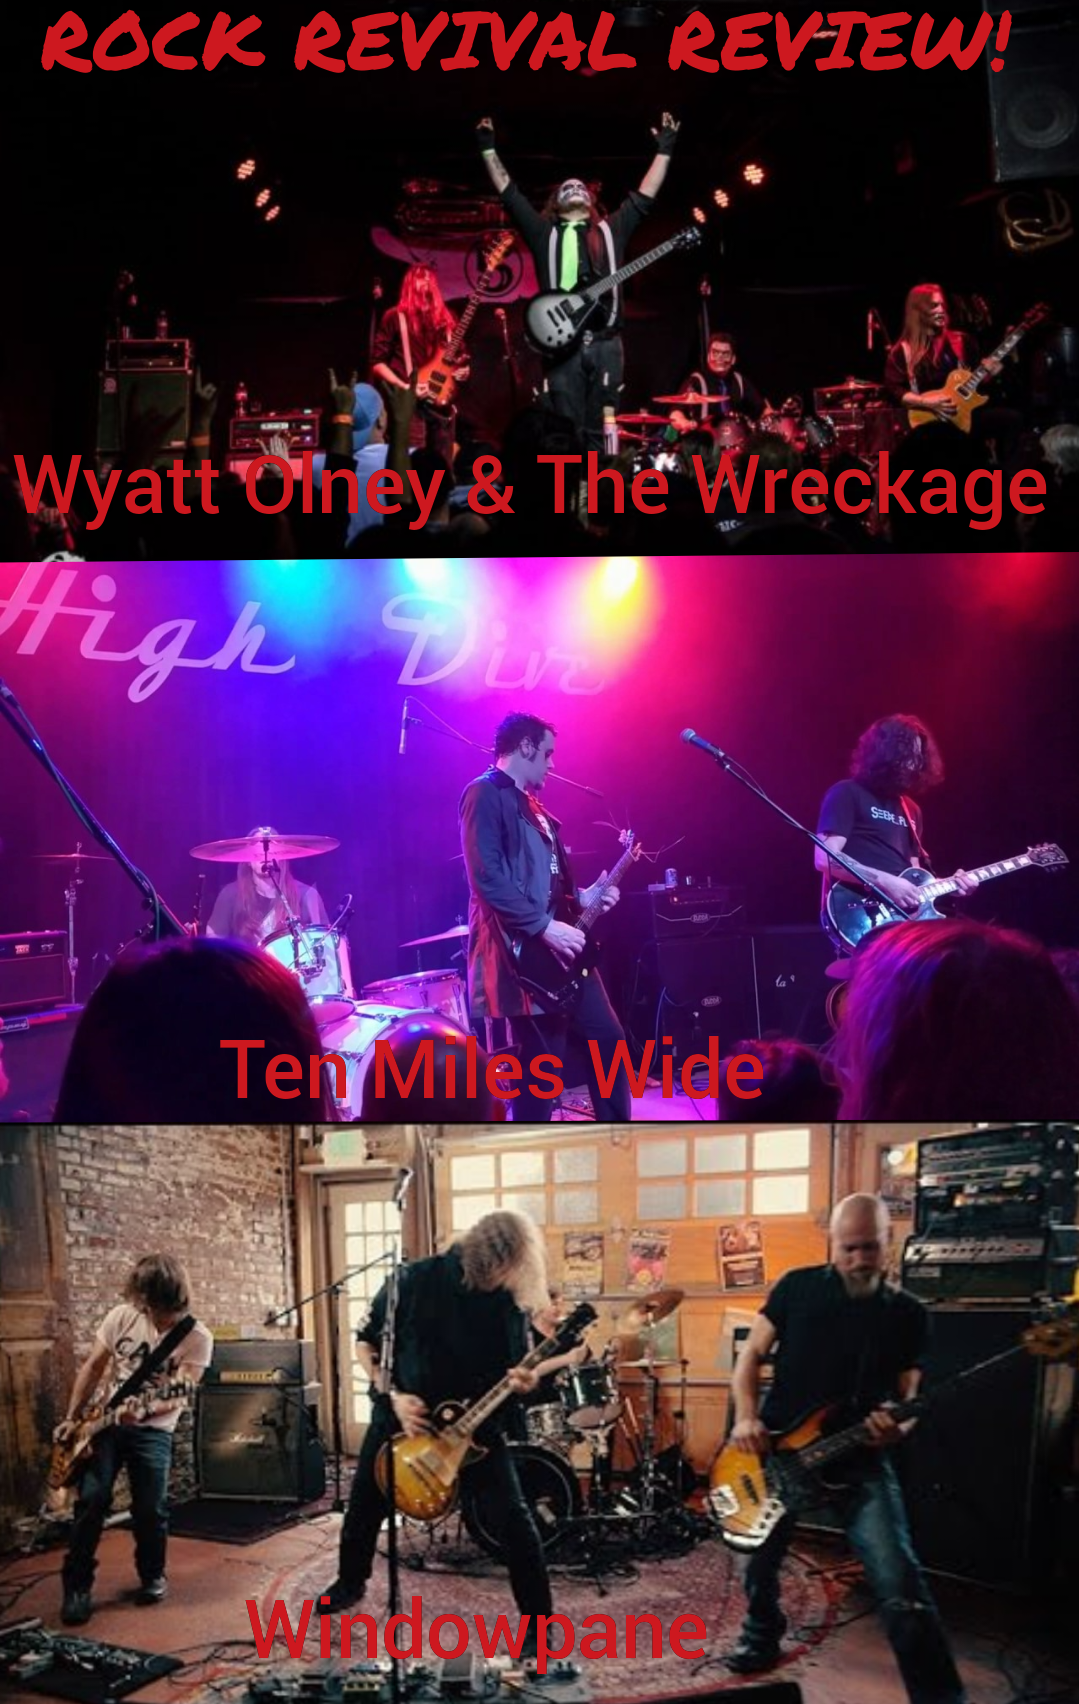 Rock Revival Review: Wyatt Olney & The Wreckage, Ten Miles Wide, & Windowpane